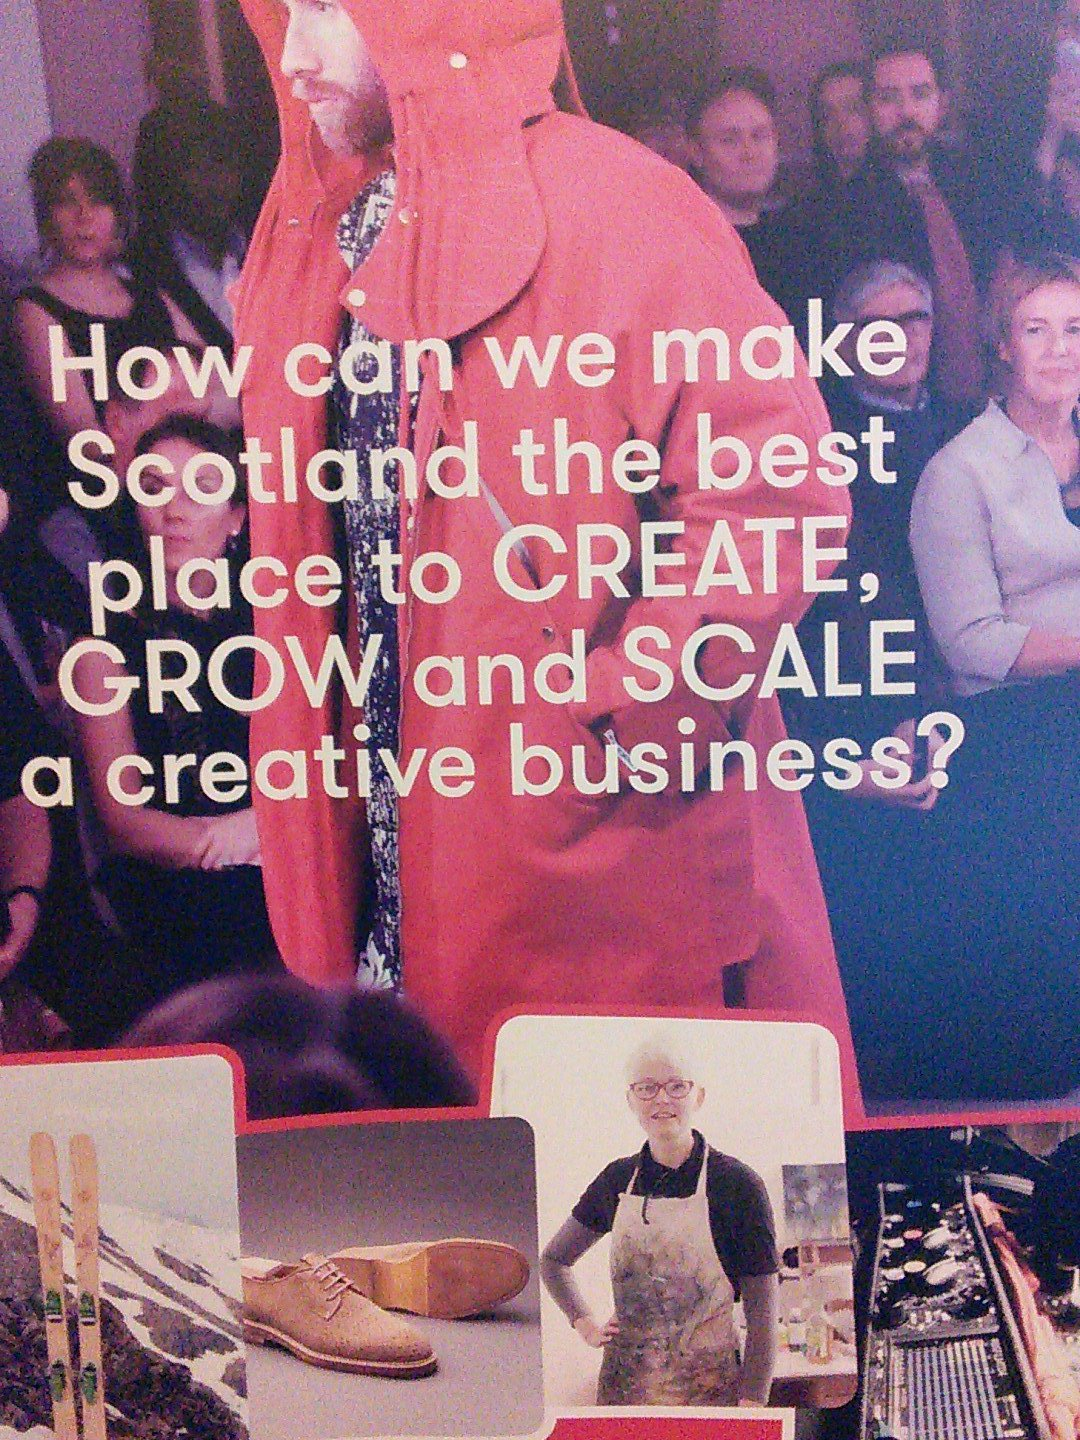 #ScotEcon16 @CEOScotland come and talk to us about a creative industry strategy for you region. https://t.co/daJmK7IApa